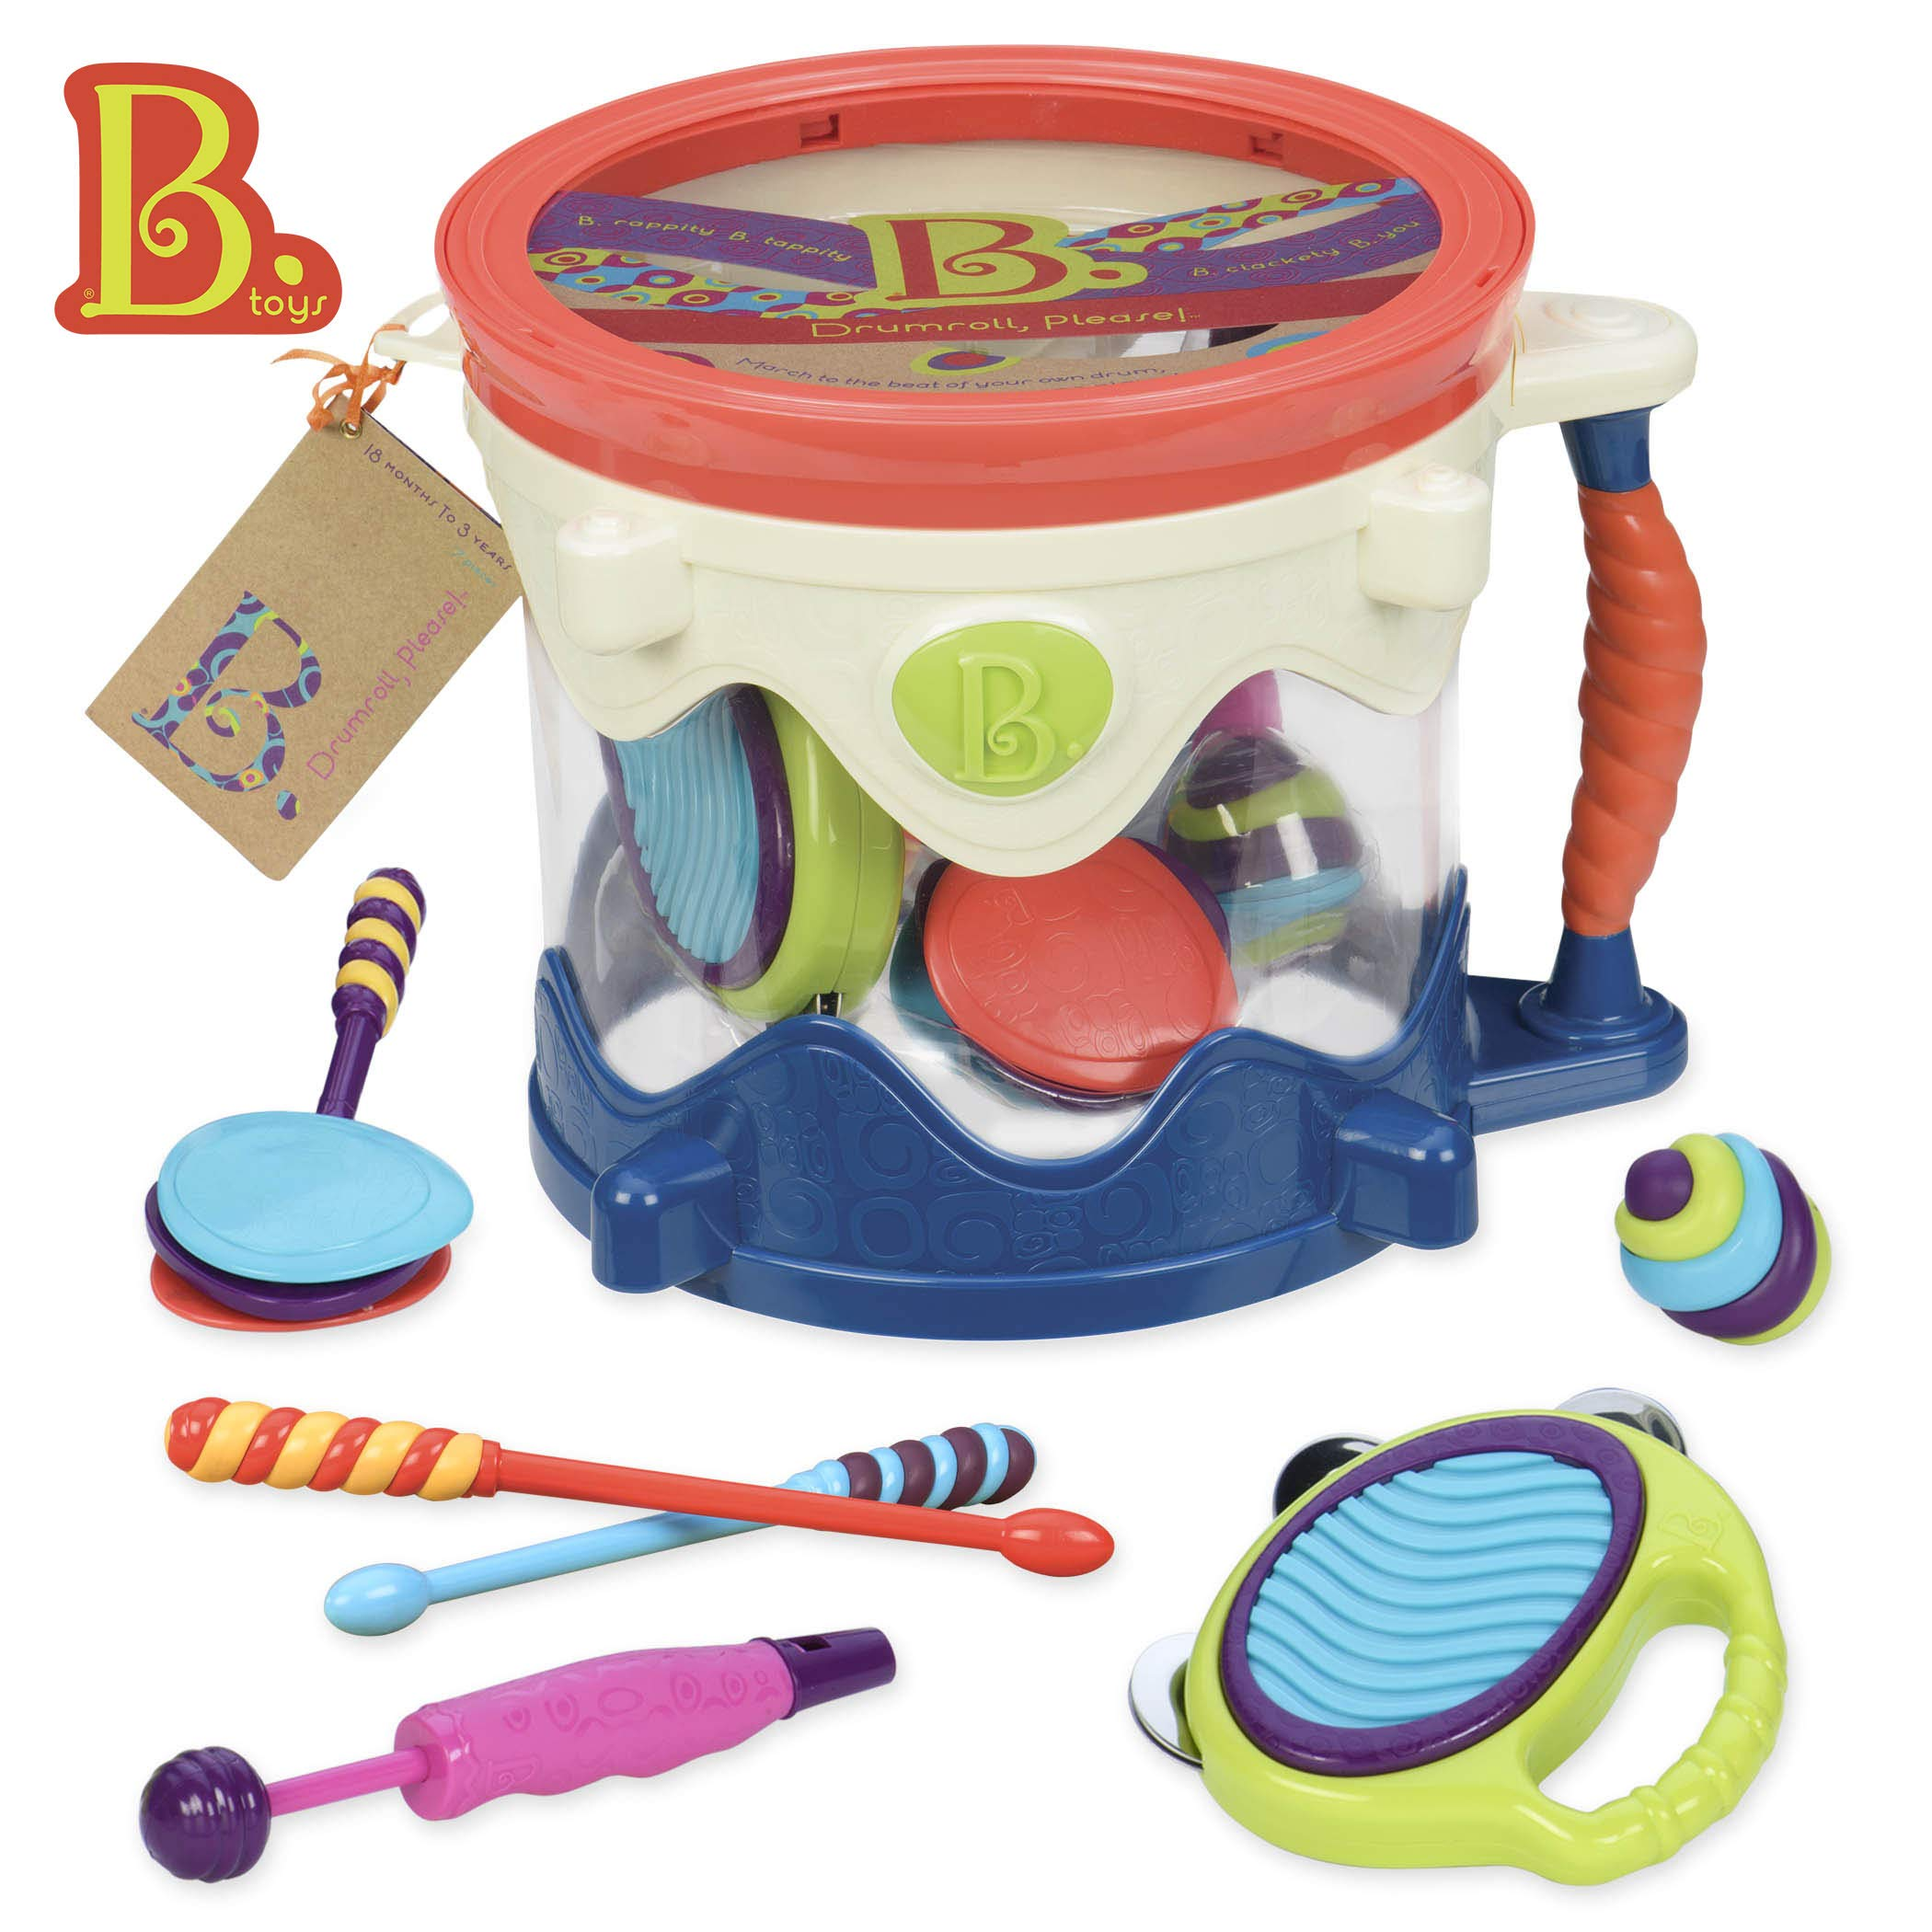 B toys - Drumroll Please - 7 Musical Instruments Toy Drum Kit for Kids 18 months + (7-Pcs) by B. toys by Battat